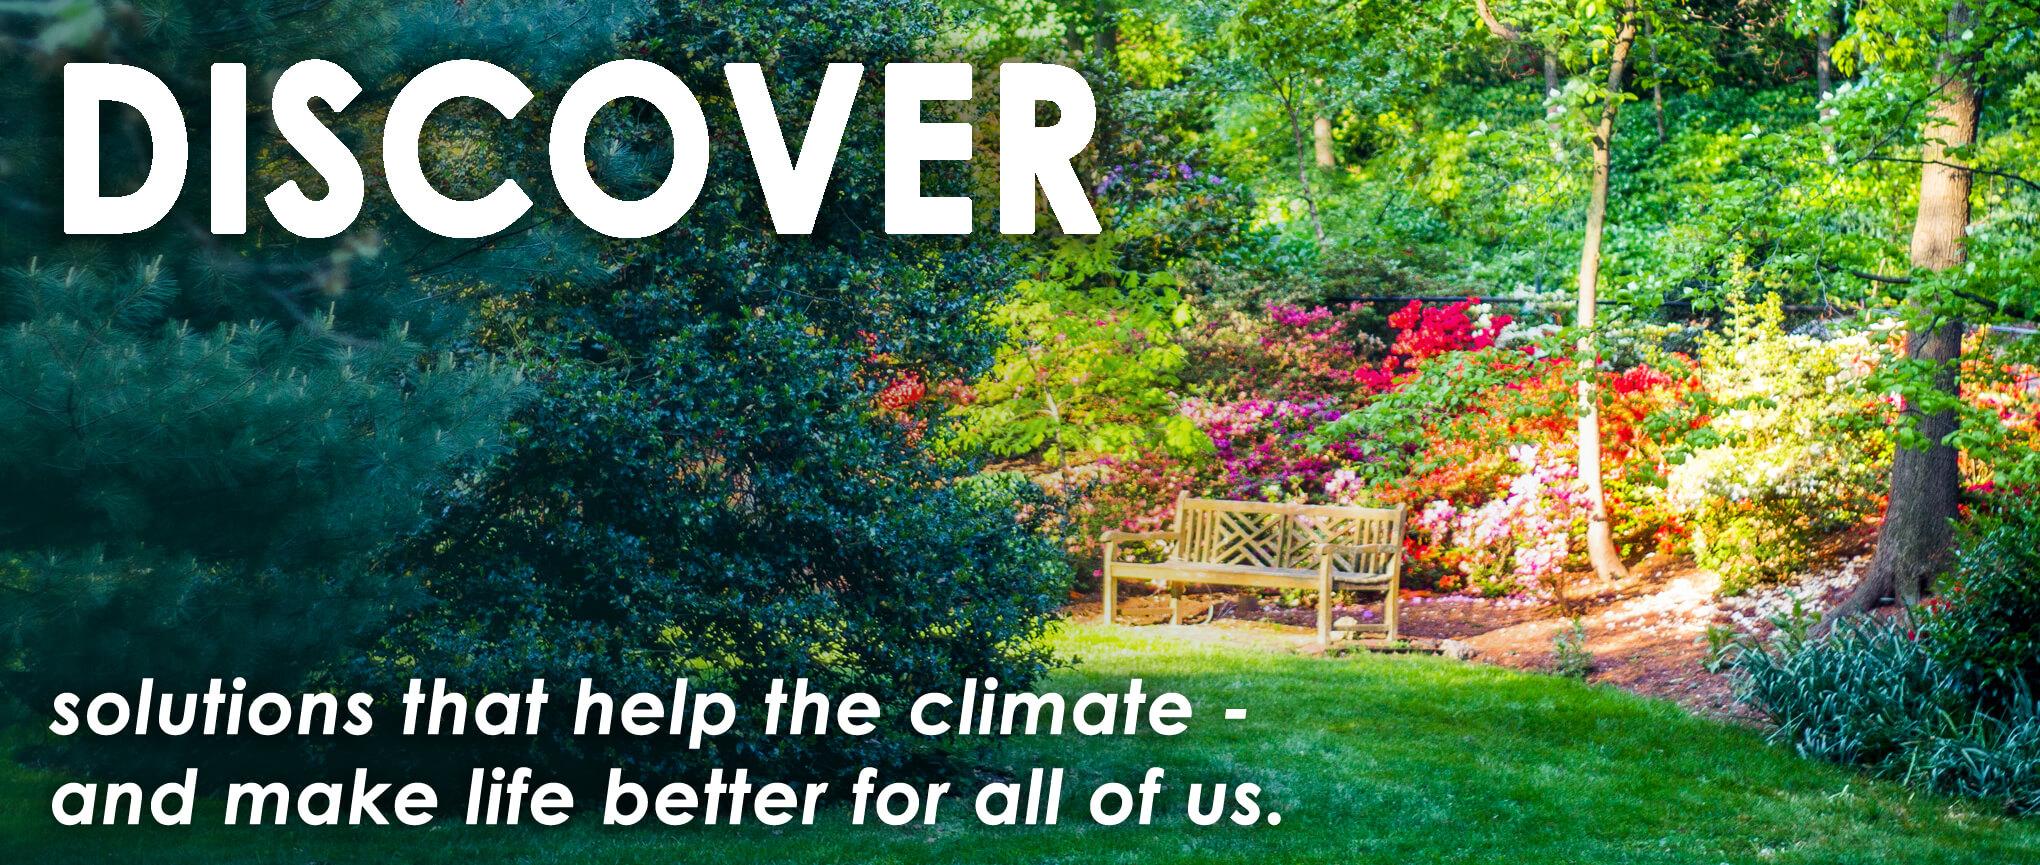 Discover Multisolving - solutions that help the climate and all of us